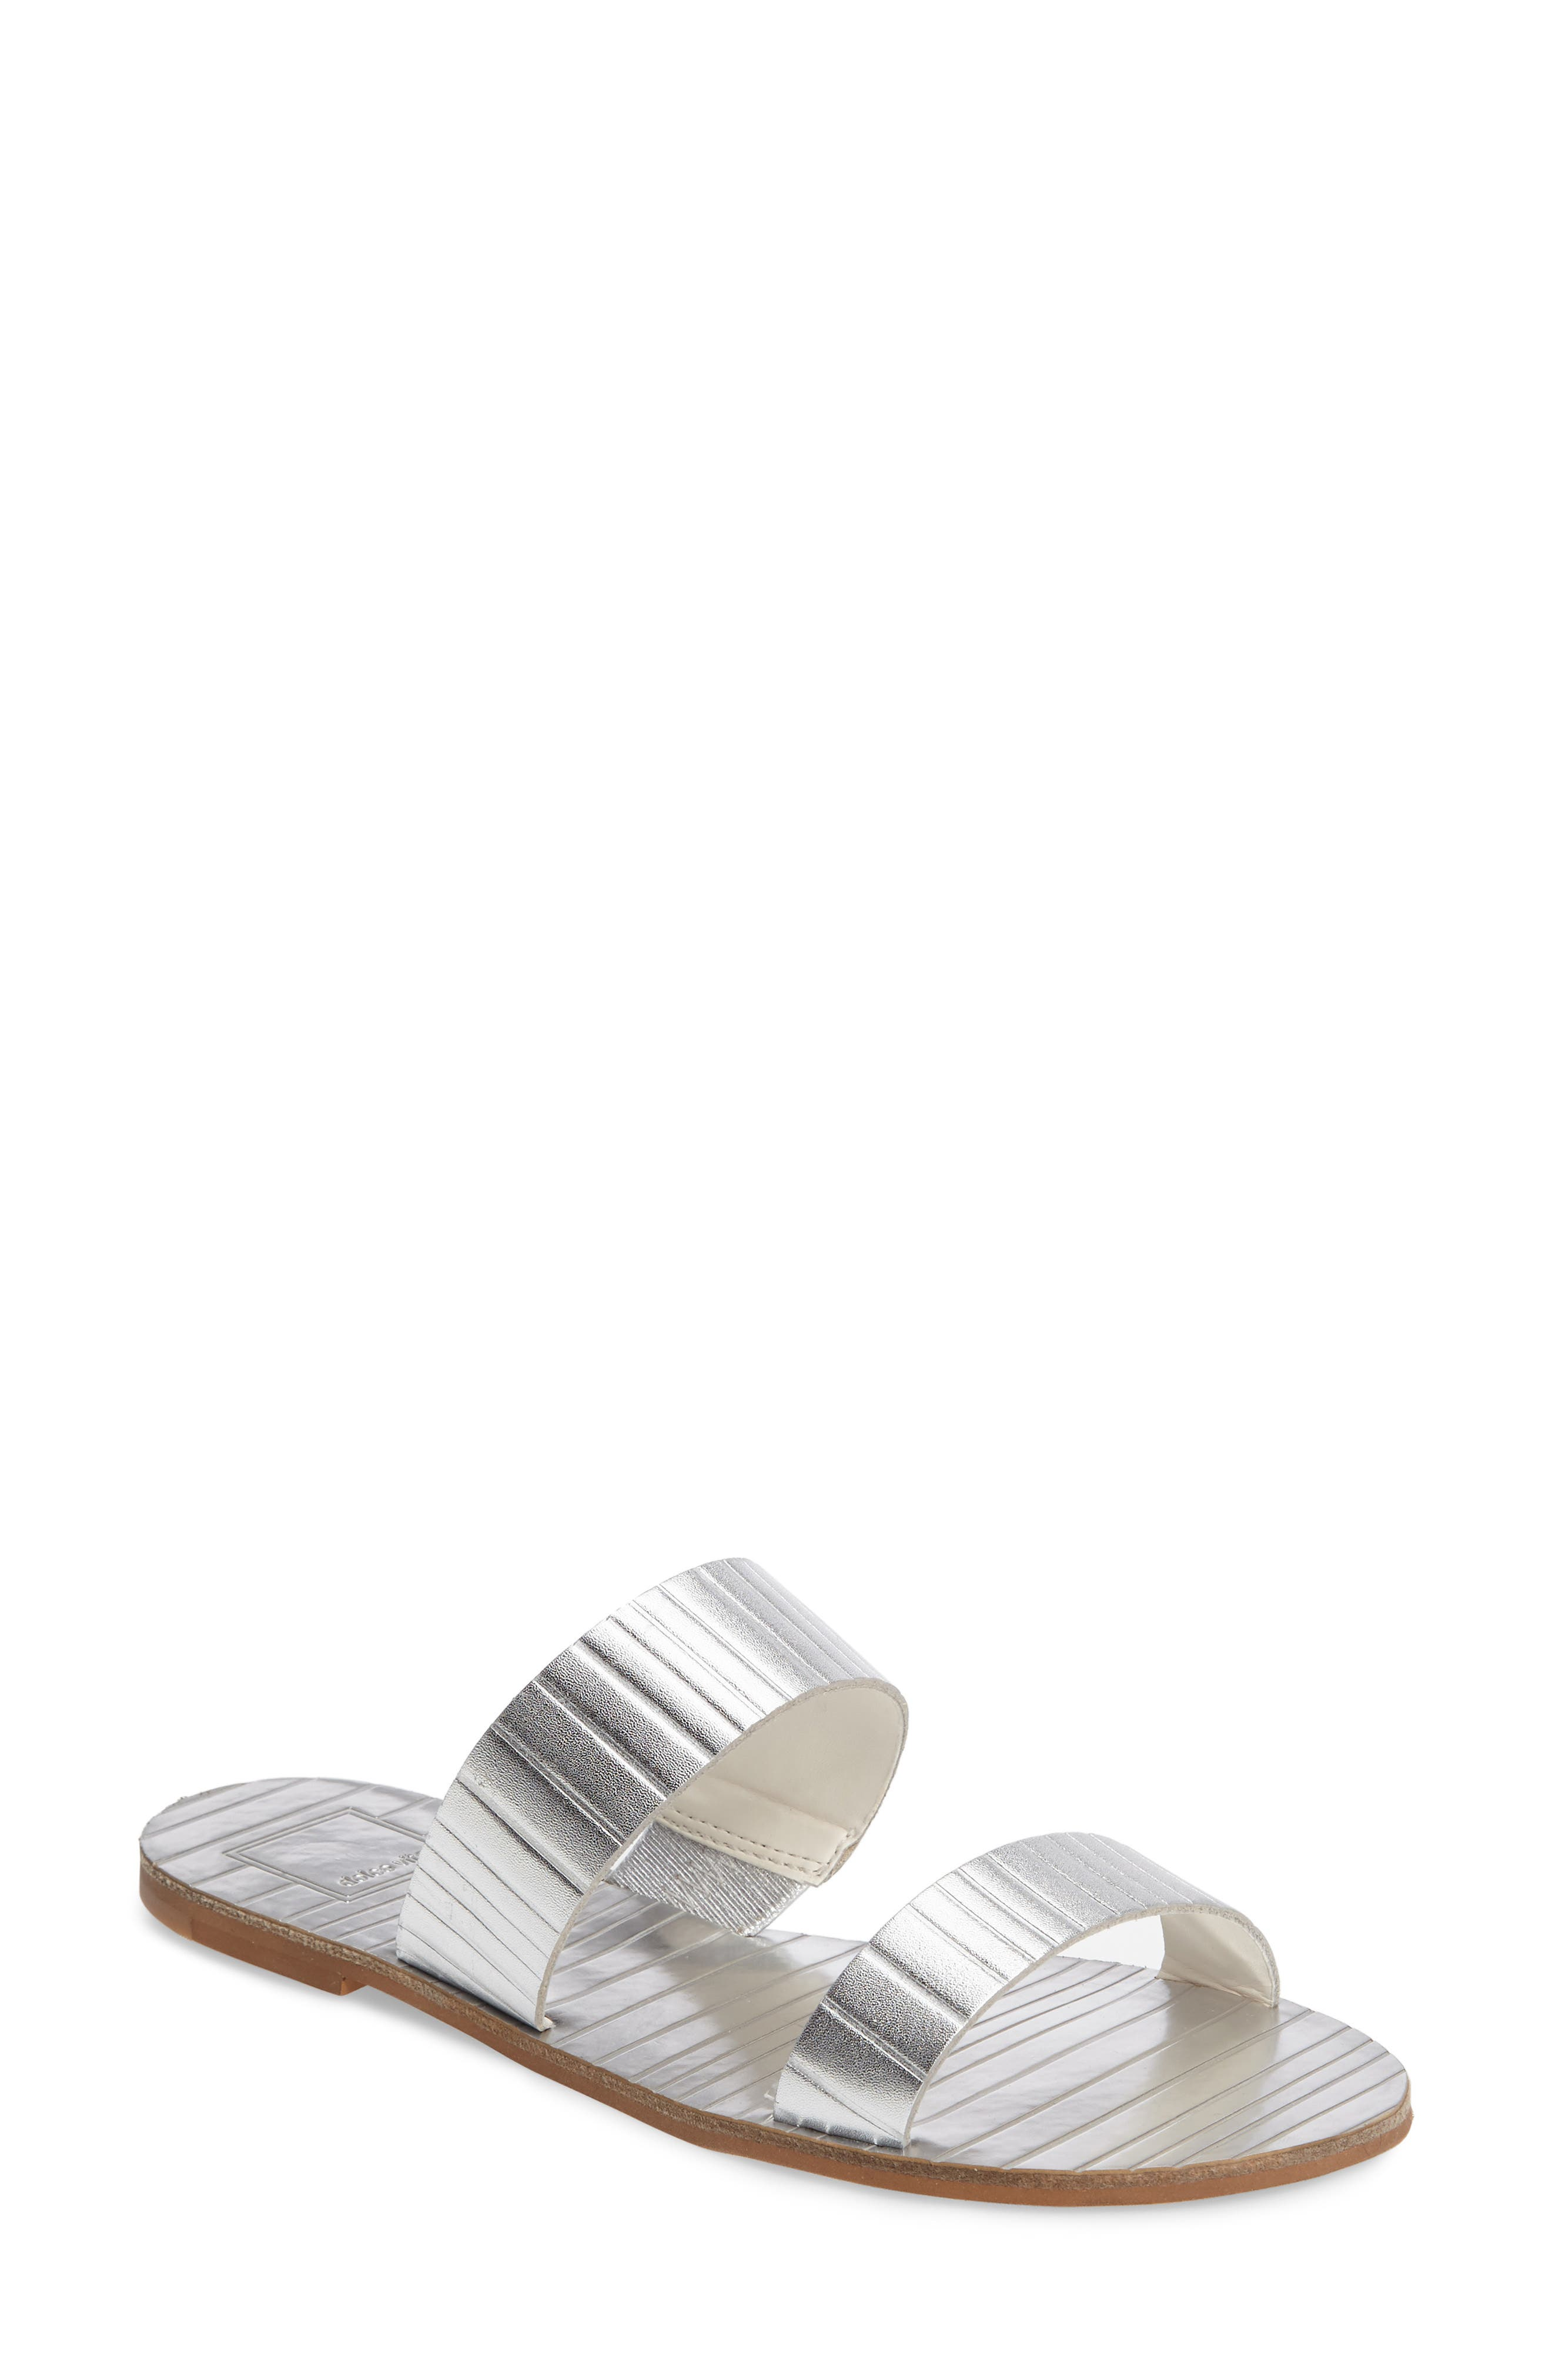 Jaz Sandal,                         Main,                         color, 040